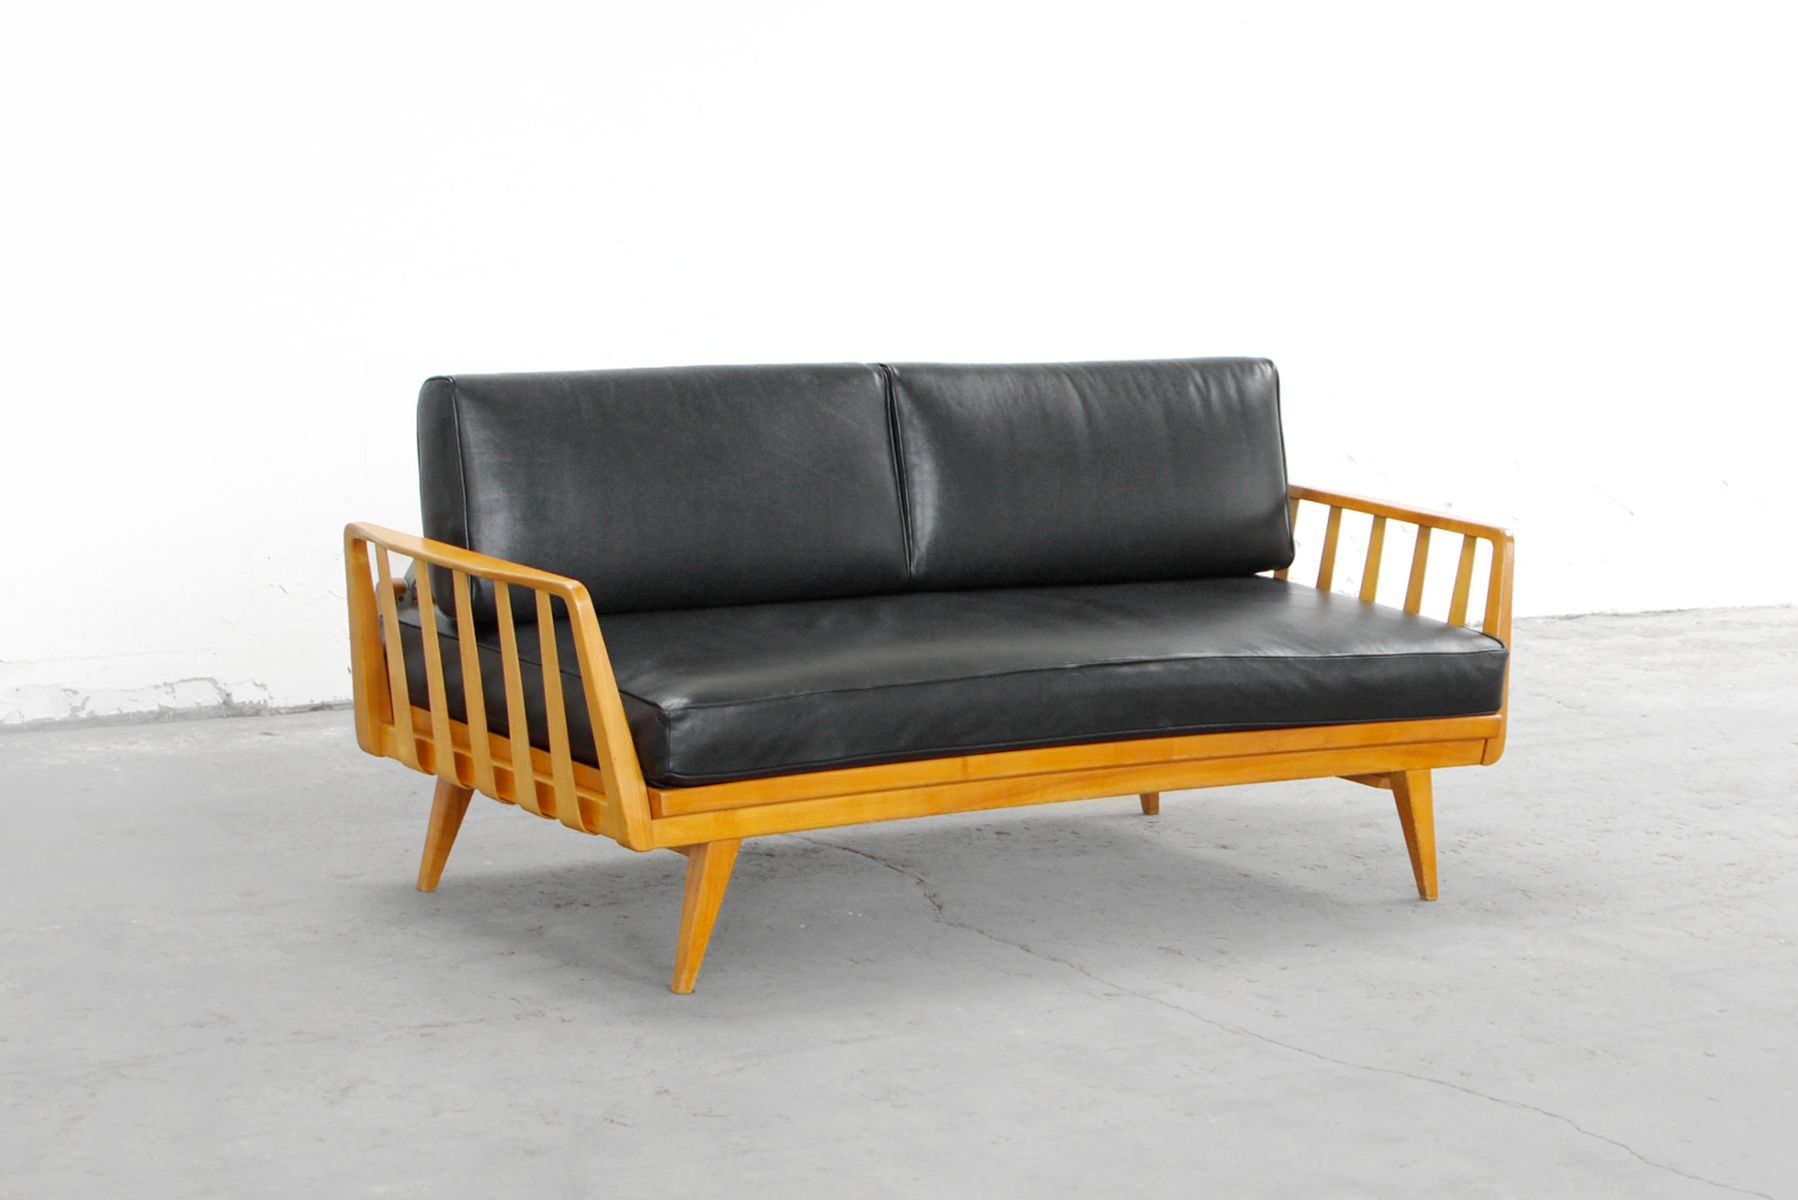 cherrywood sofa by walter knoll for knoll antimott 1950s for sale at pamono. Black Bedroom Furniture Sets. Home Design Ideas